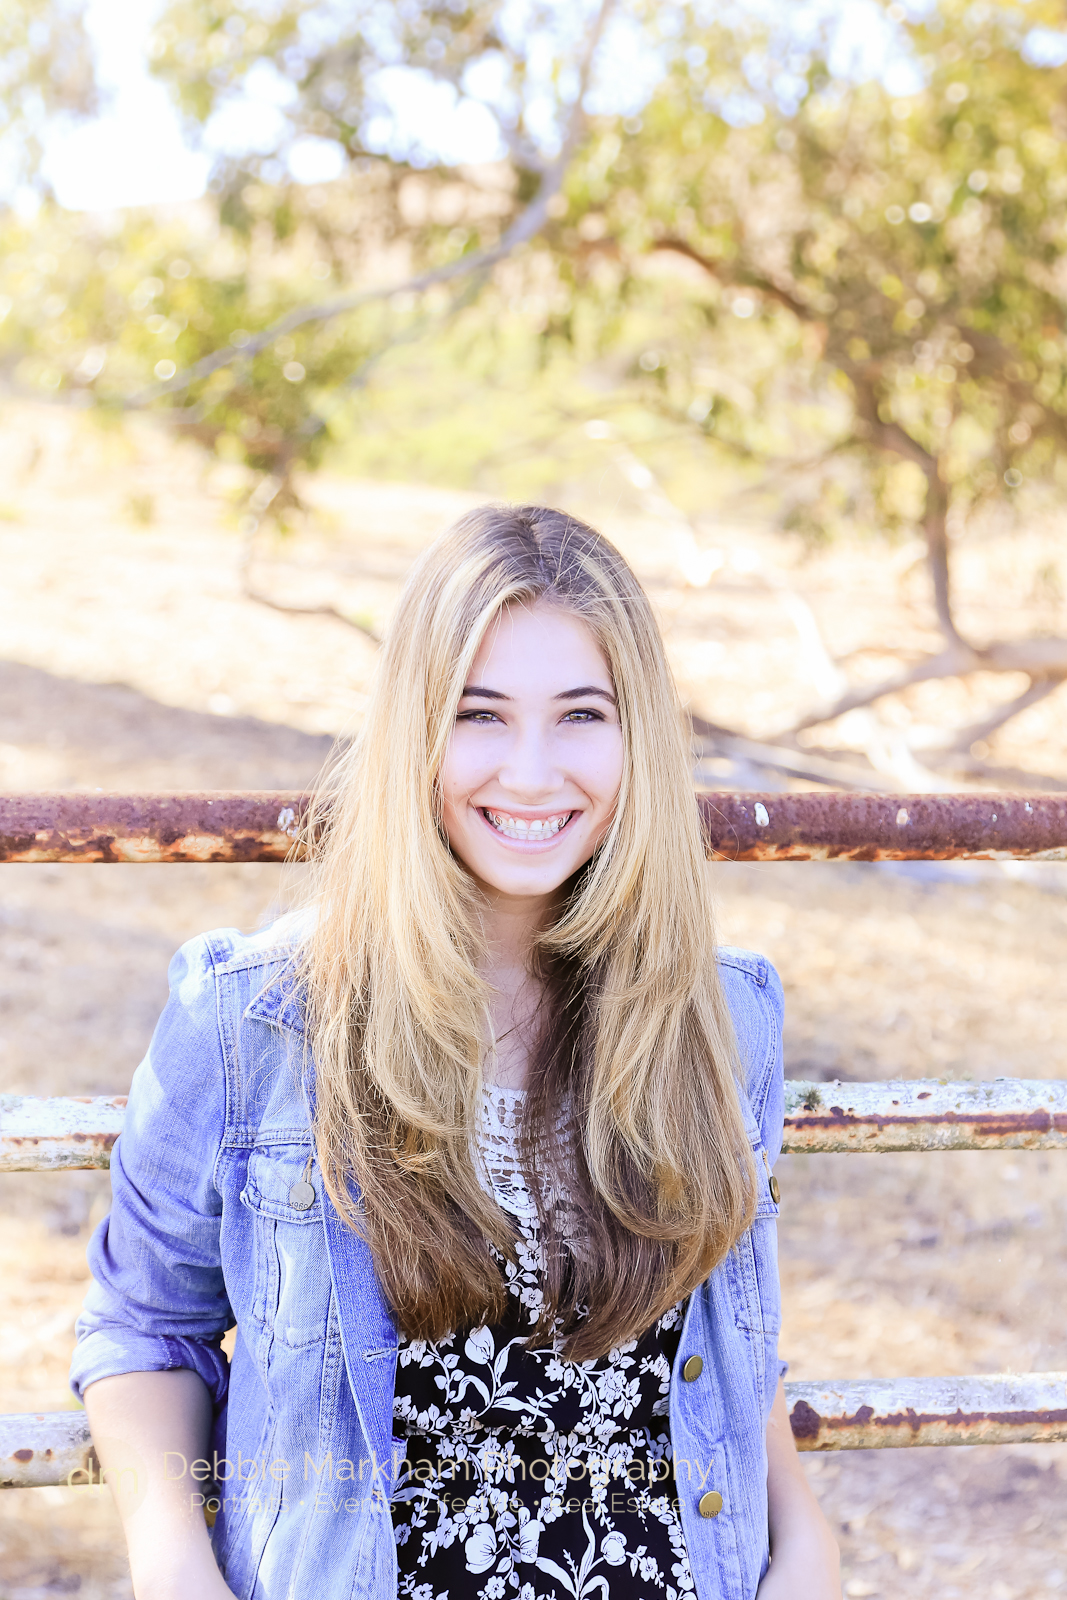 Photographer_Debbie Markham_Senior Portraits_Central Coast_California_Outdoor-2535